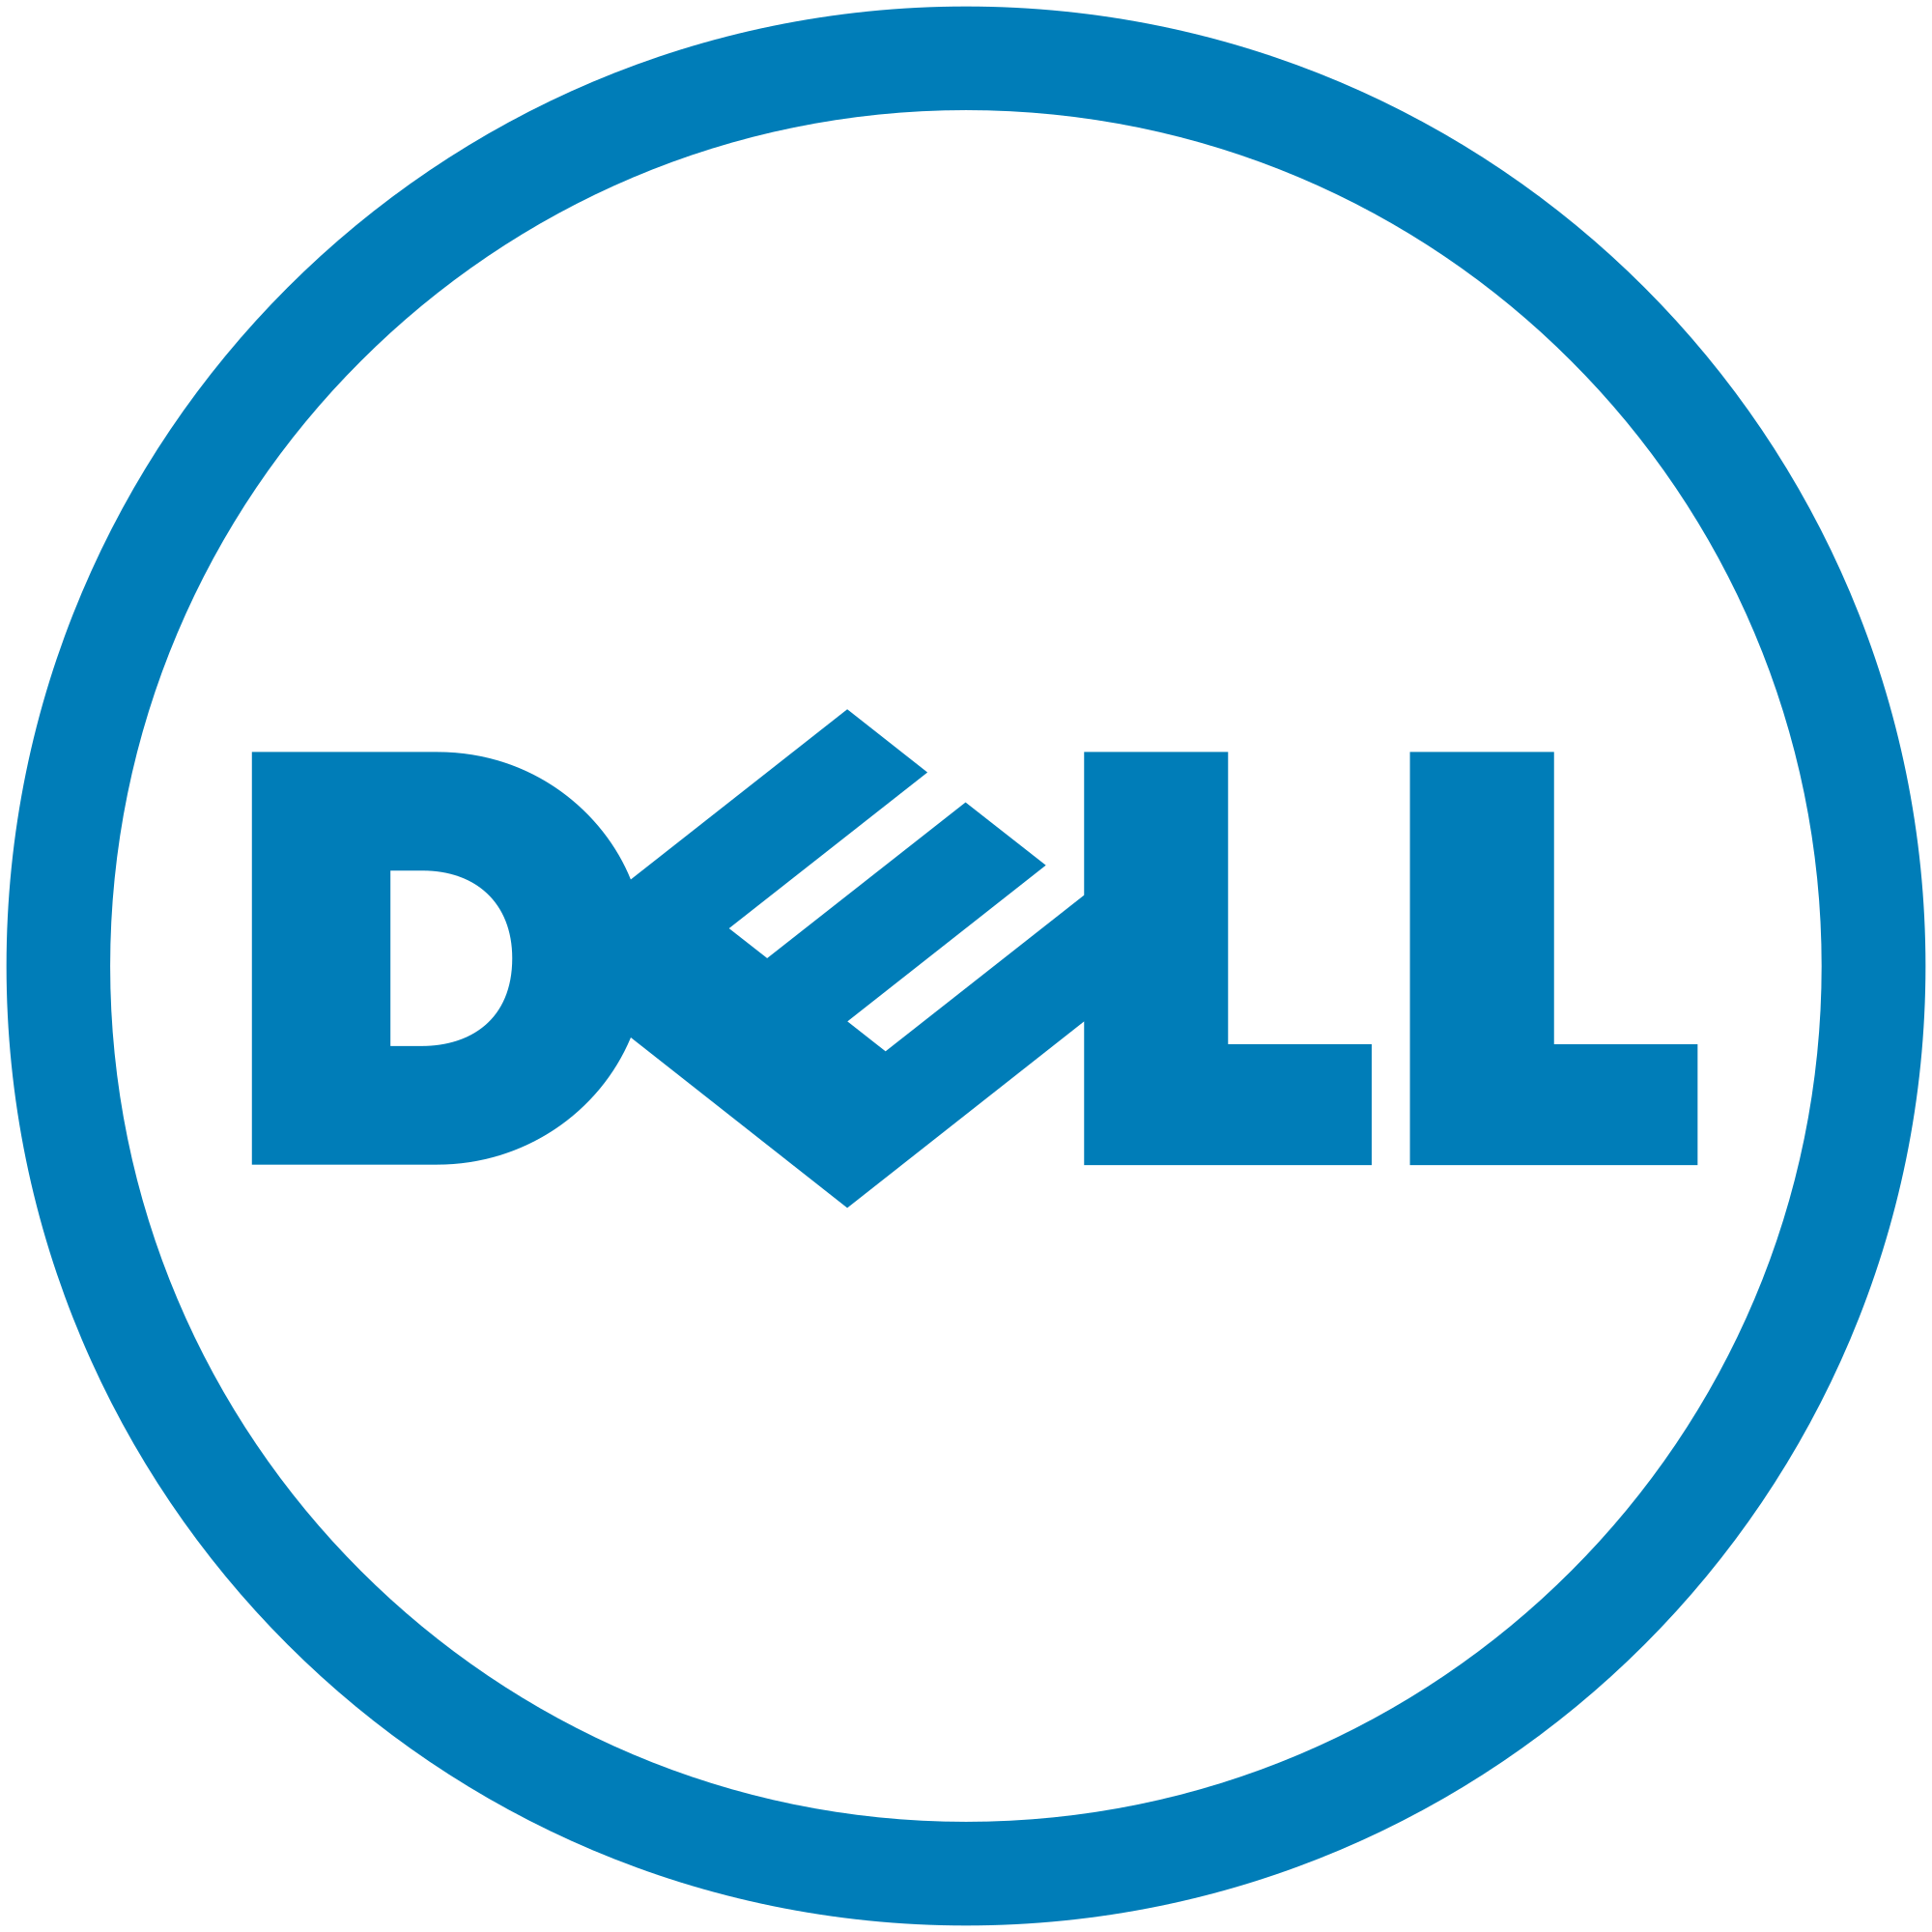 Dell Logo PNG - 29604